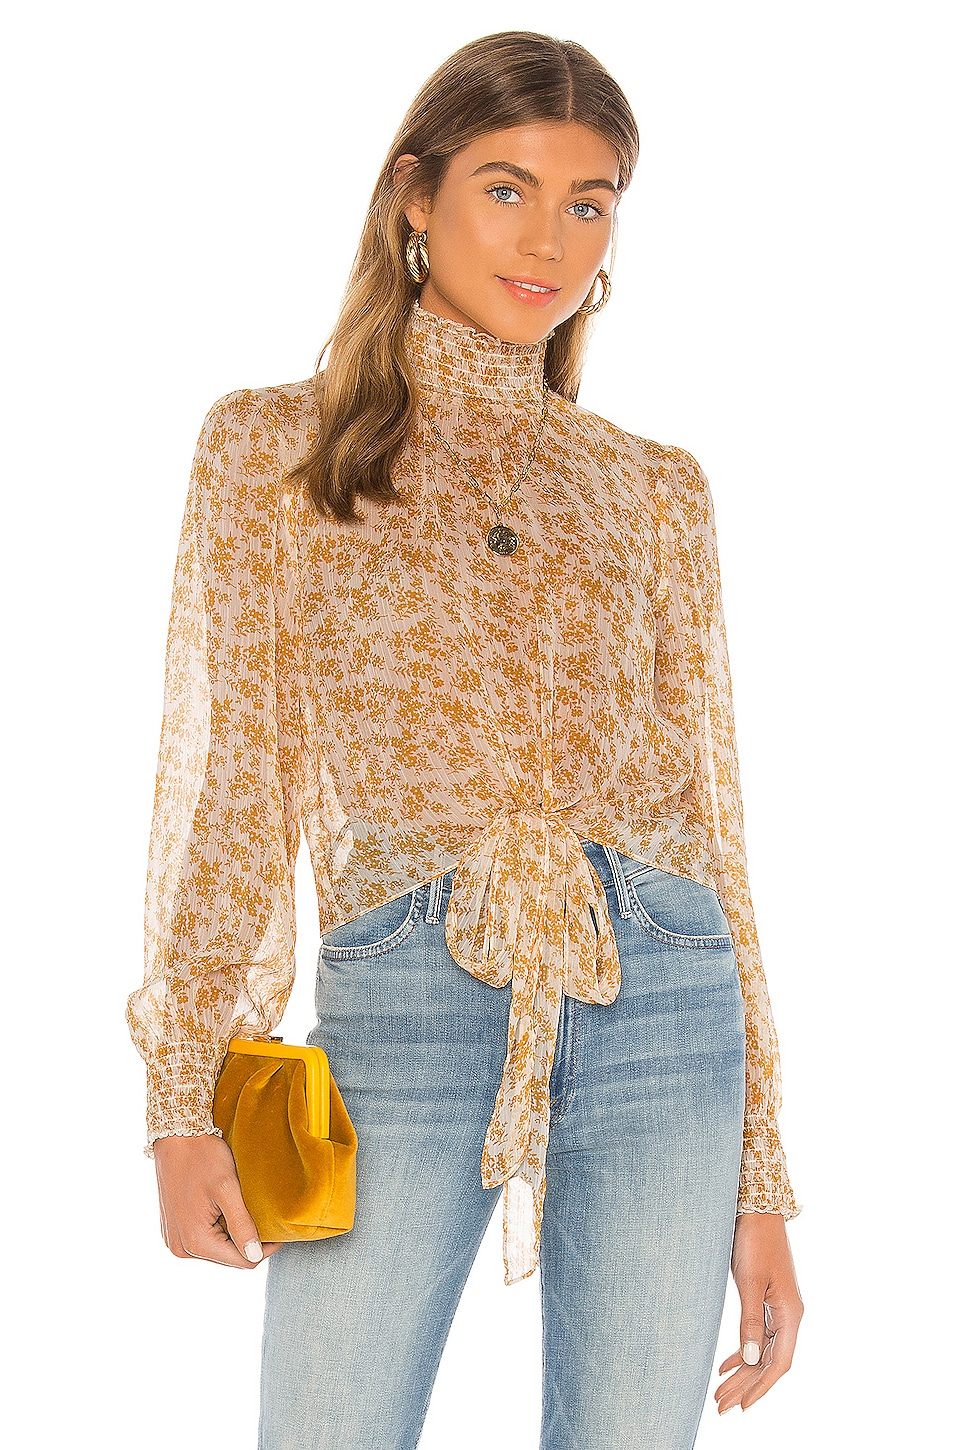 Lana High Neck Blouse             MINKPINK                                                                                                       CA$ 98.11 3